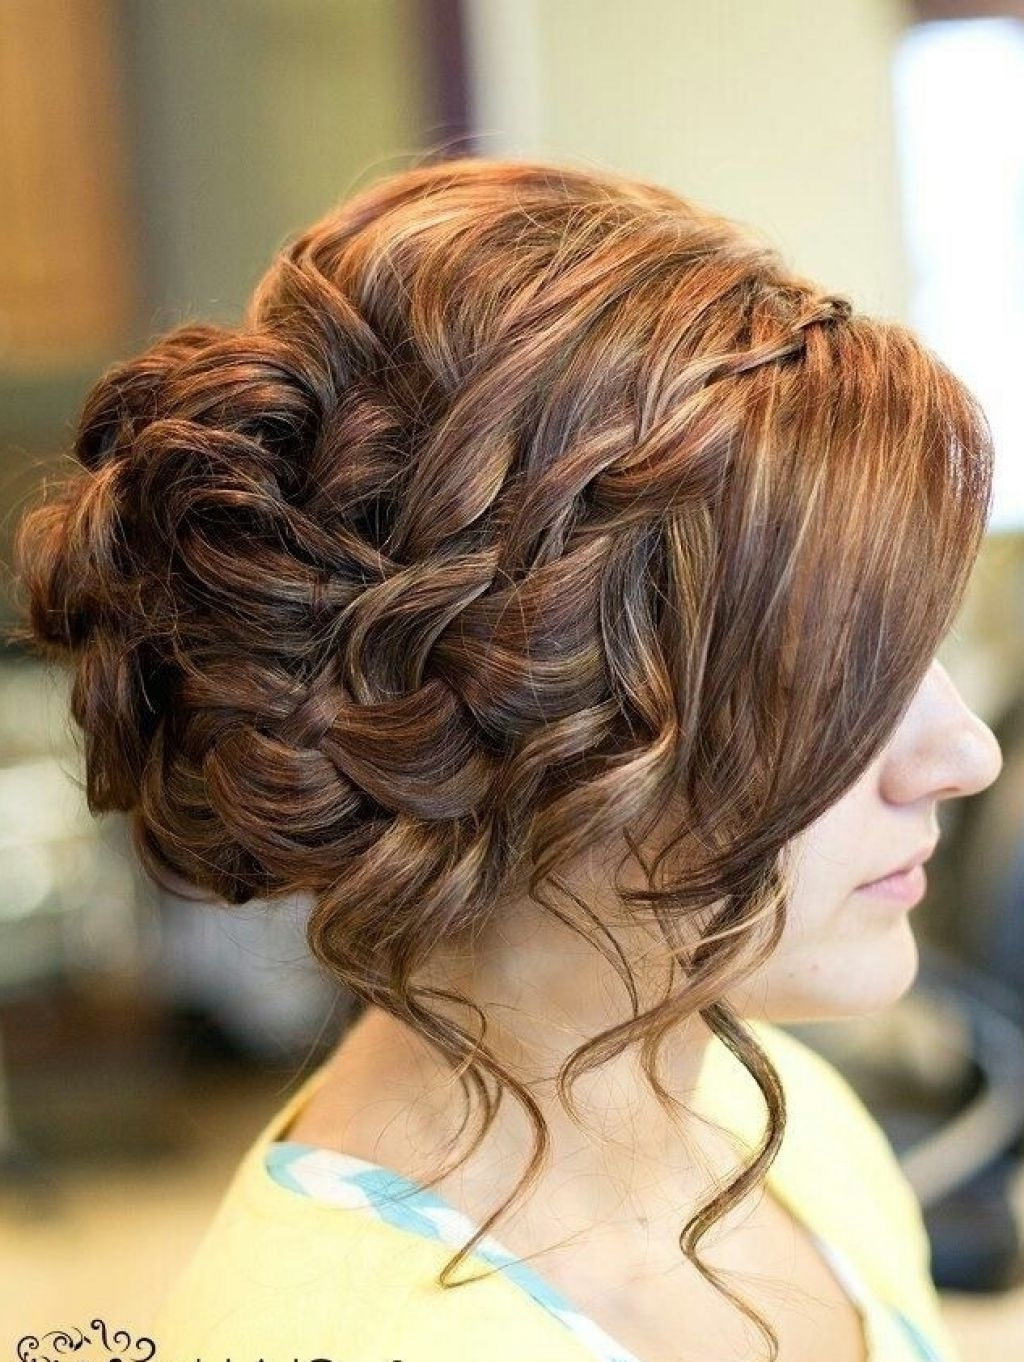 Prom Hairstyles For Long Hair That Are Simply Adorable Intended For Messy Updo Hairstyles For Prom (View 8 of 15)